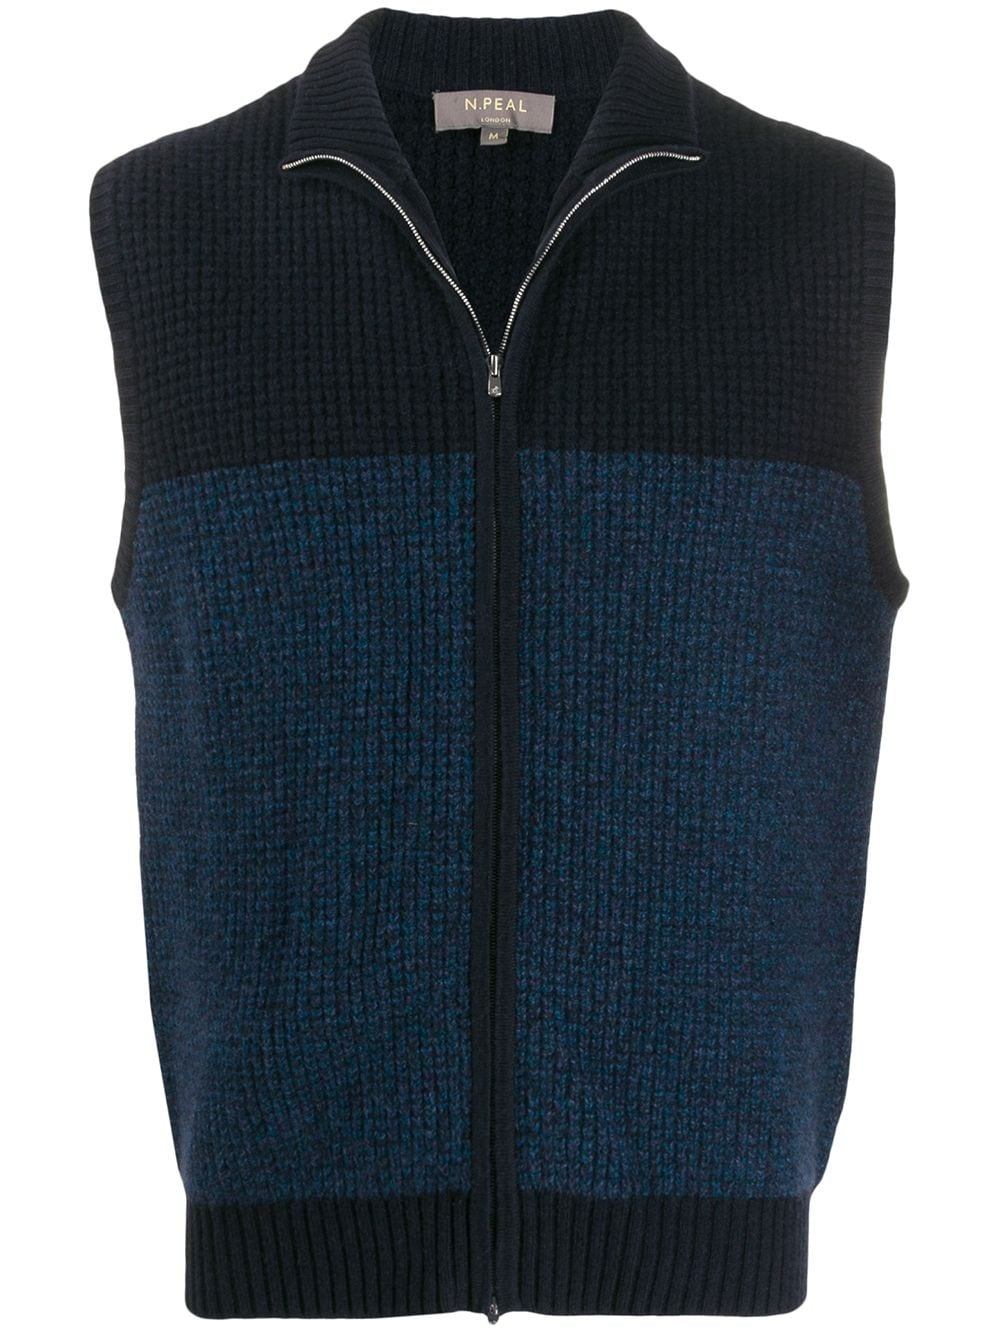 How to Layer for Fall, N. Peal zipped knitted waistcoat vest